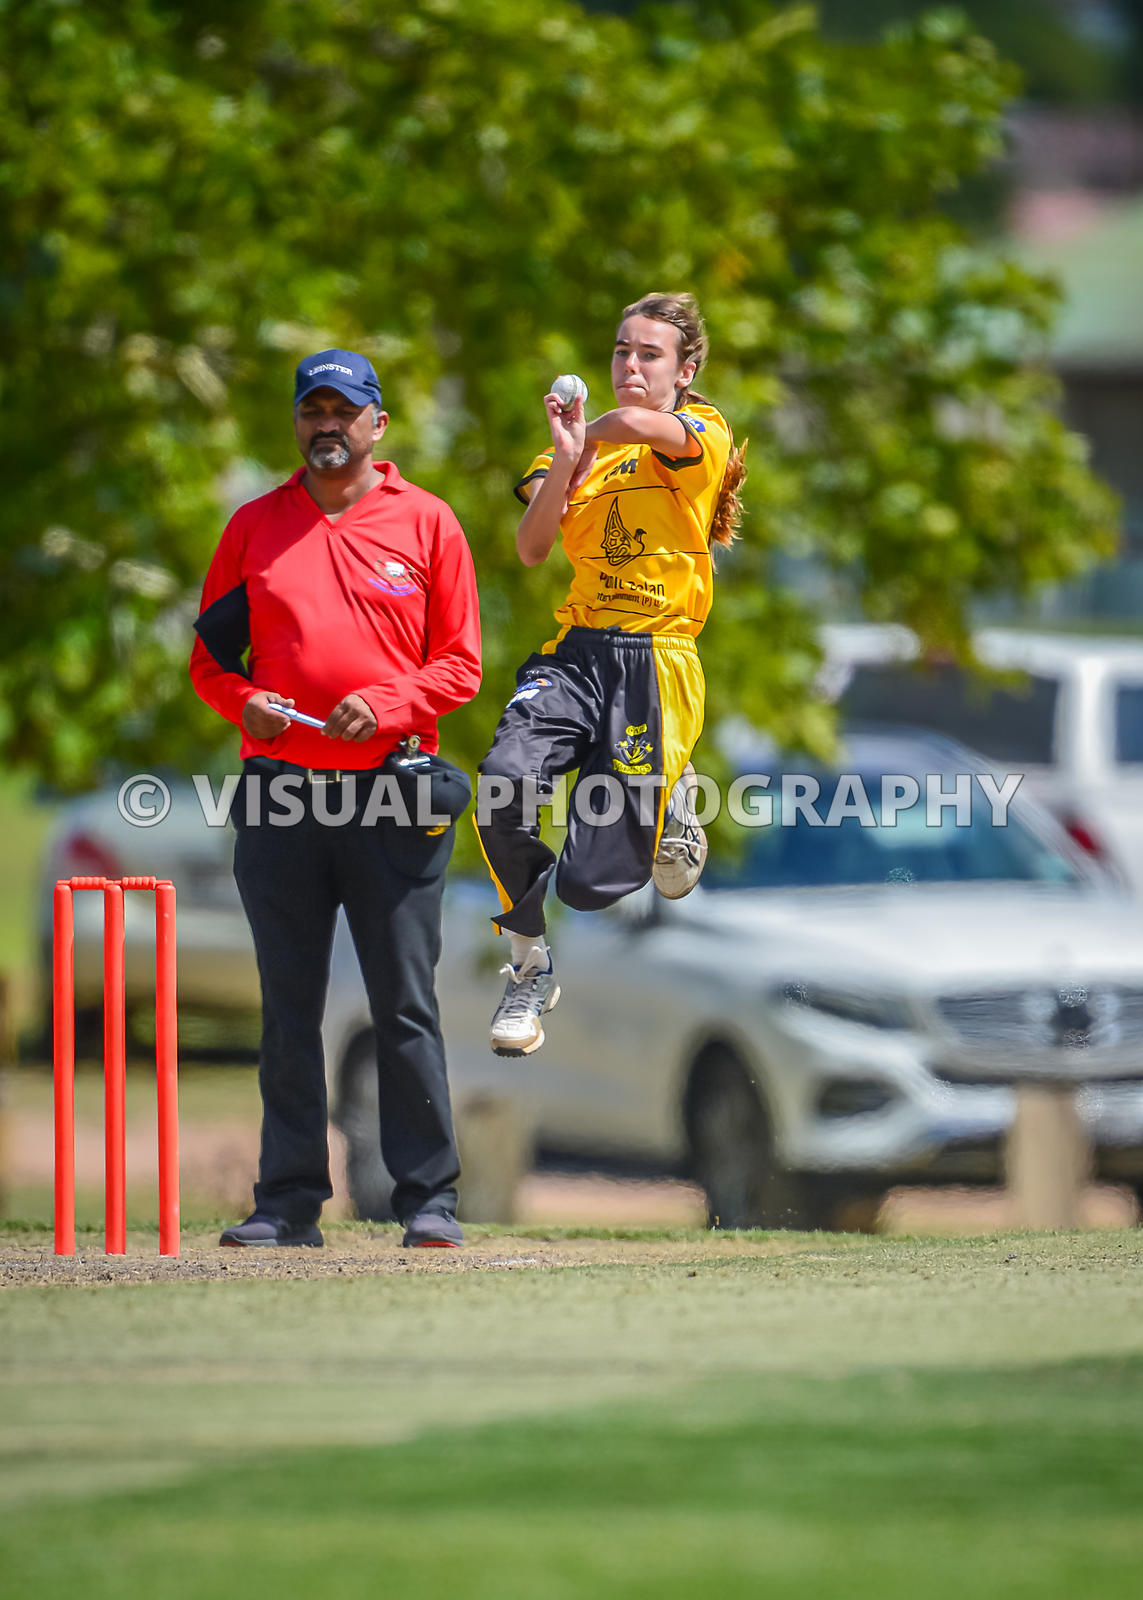 Outlaws - Vs - Vikings - Durbanville Cricket Club .